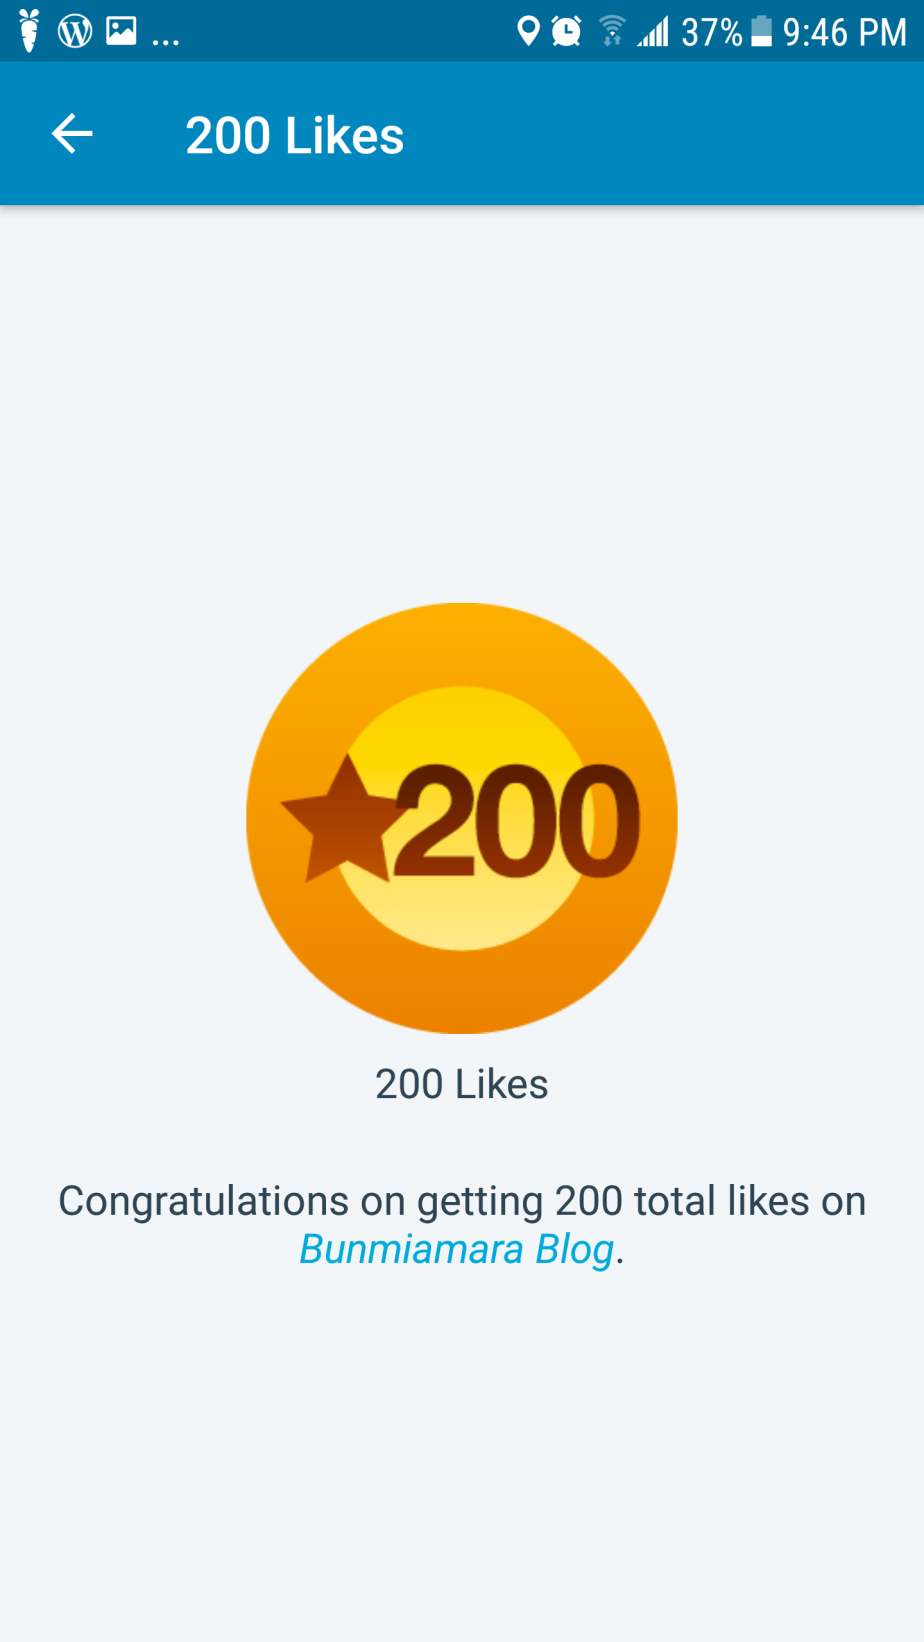 My first 200 likes